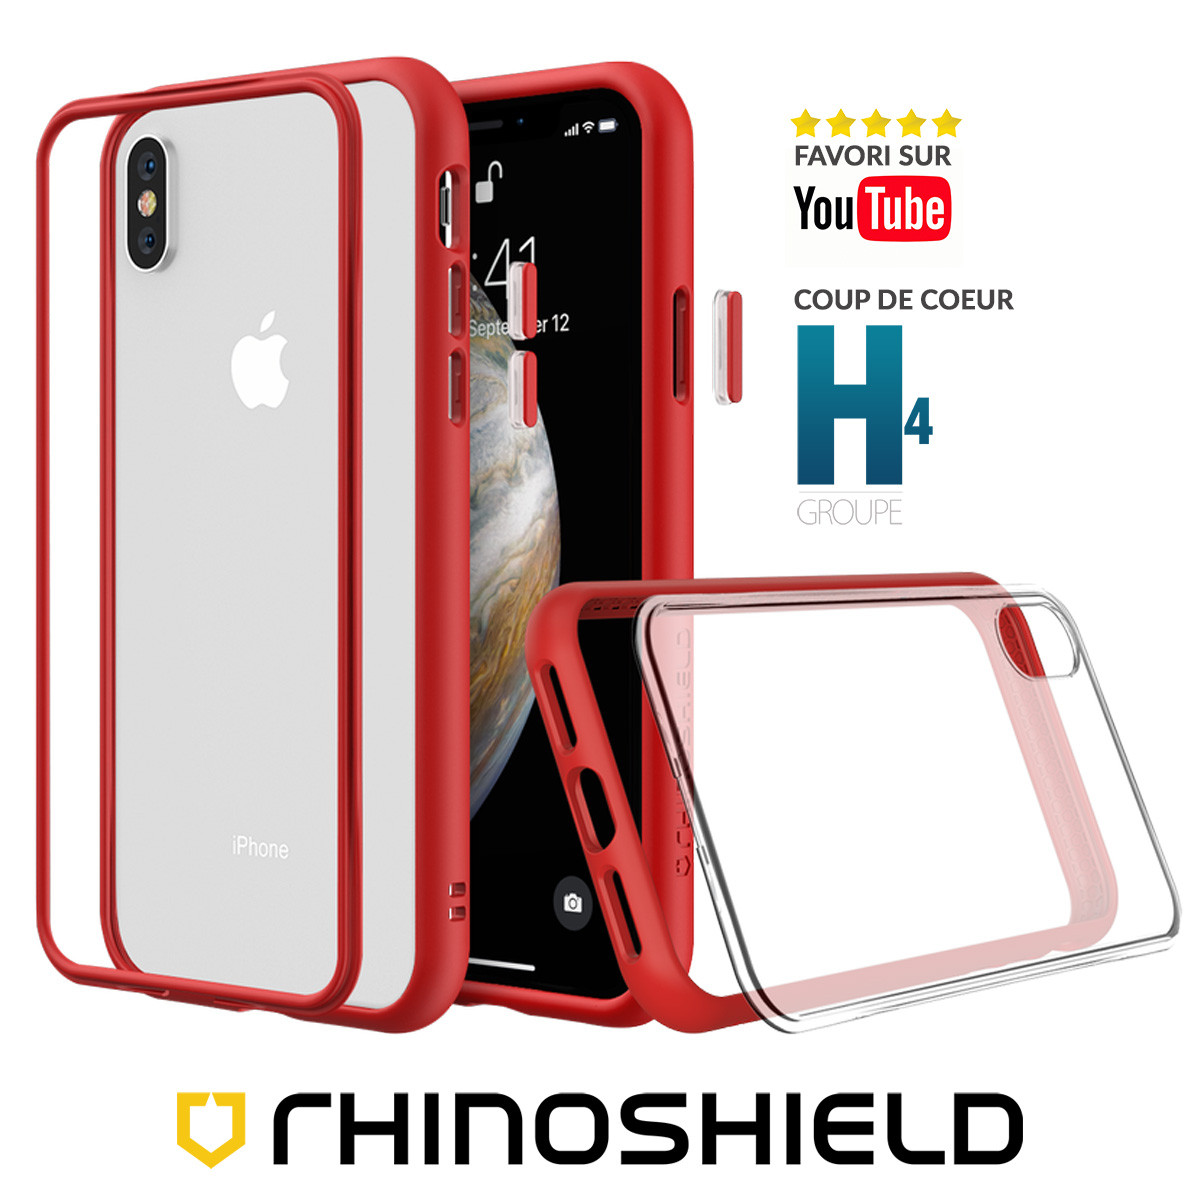 COQUE MODULAIRE MOD NX? ROUGE POUR APPLE IPHONE XS MAX - RHINOSHIELD?